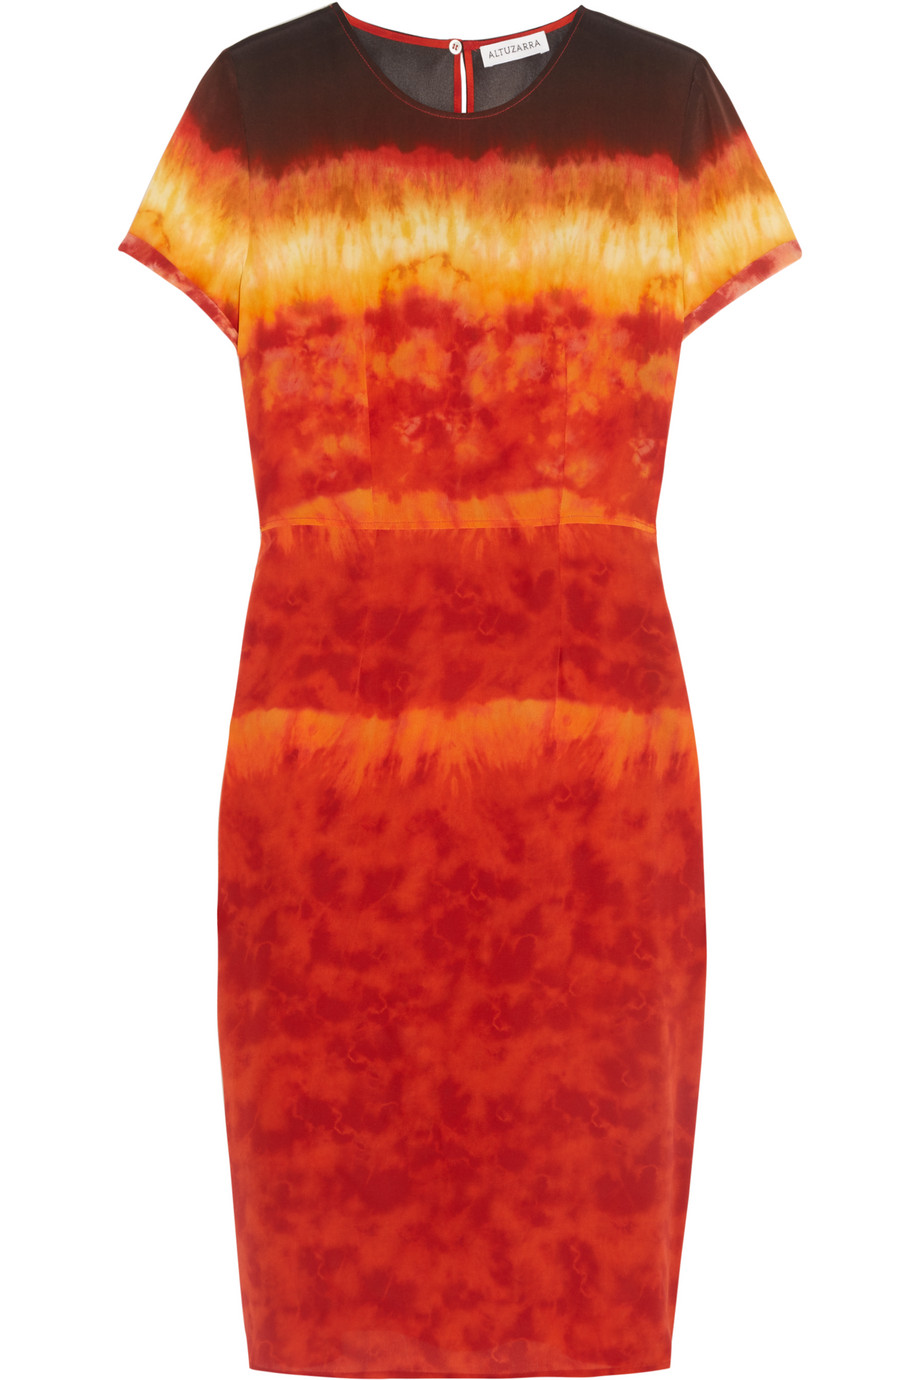 Altuzarra Glaze Tie-Dyed Silk-Satin Dress, Red/Orange, Women's, Size: 40